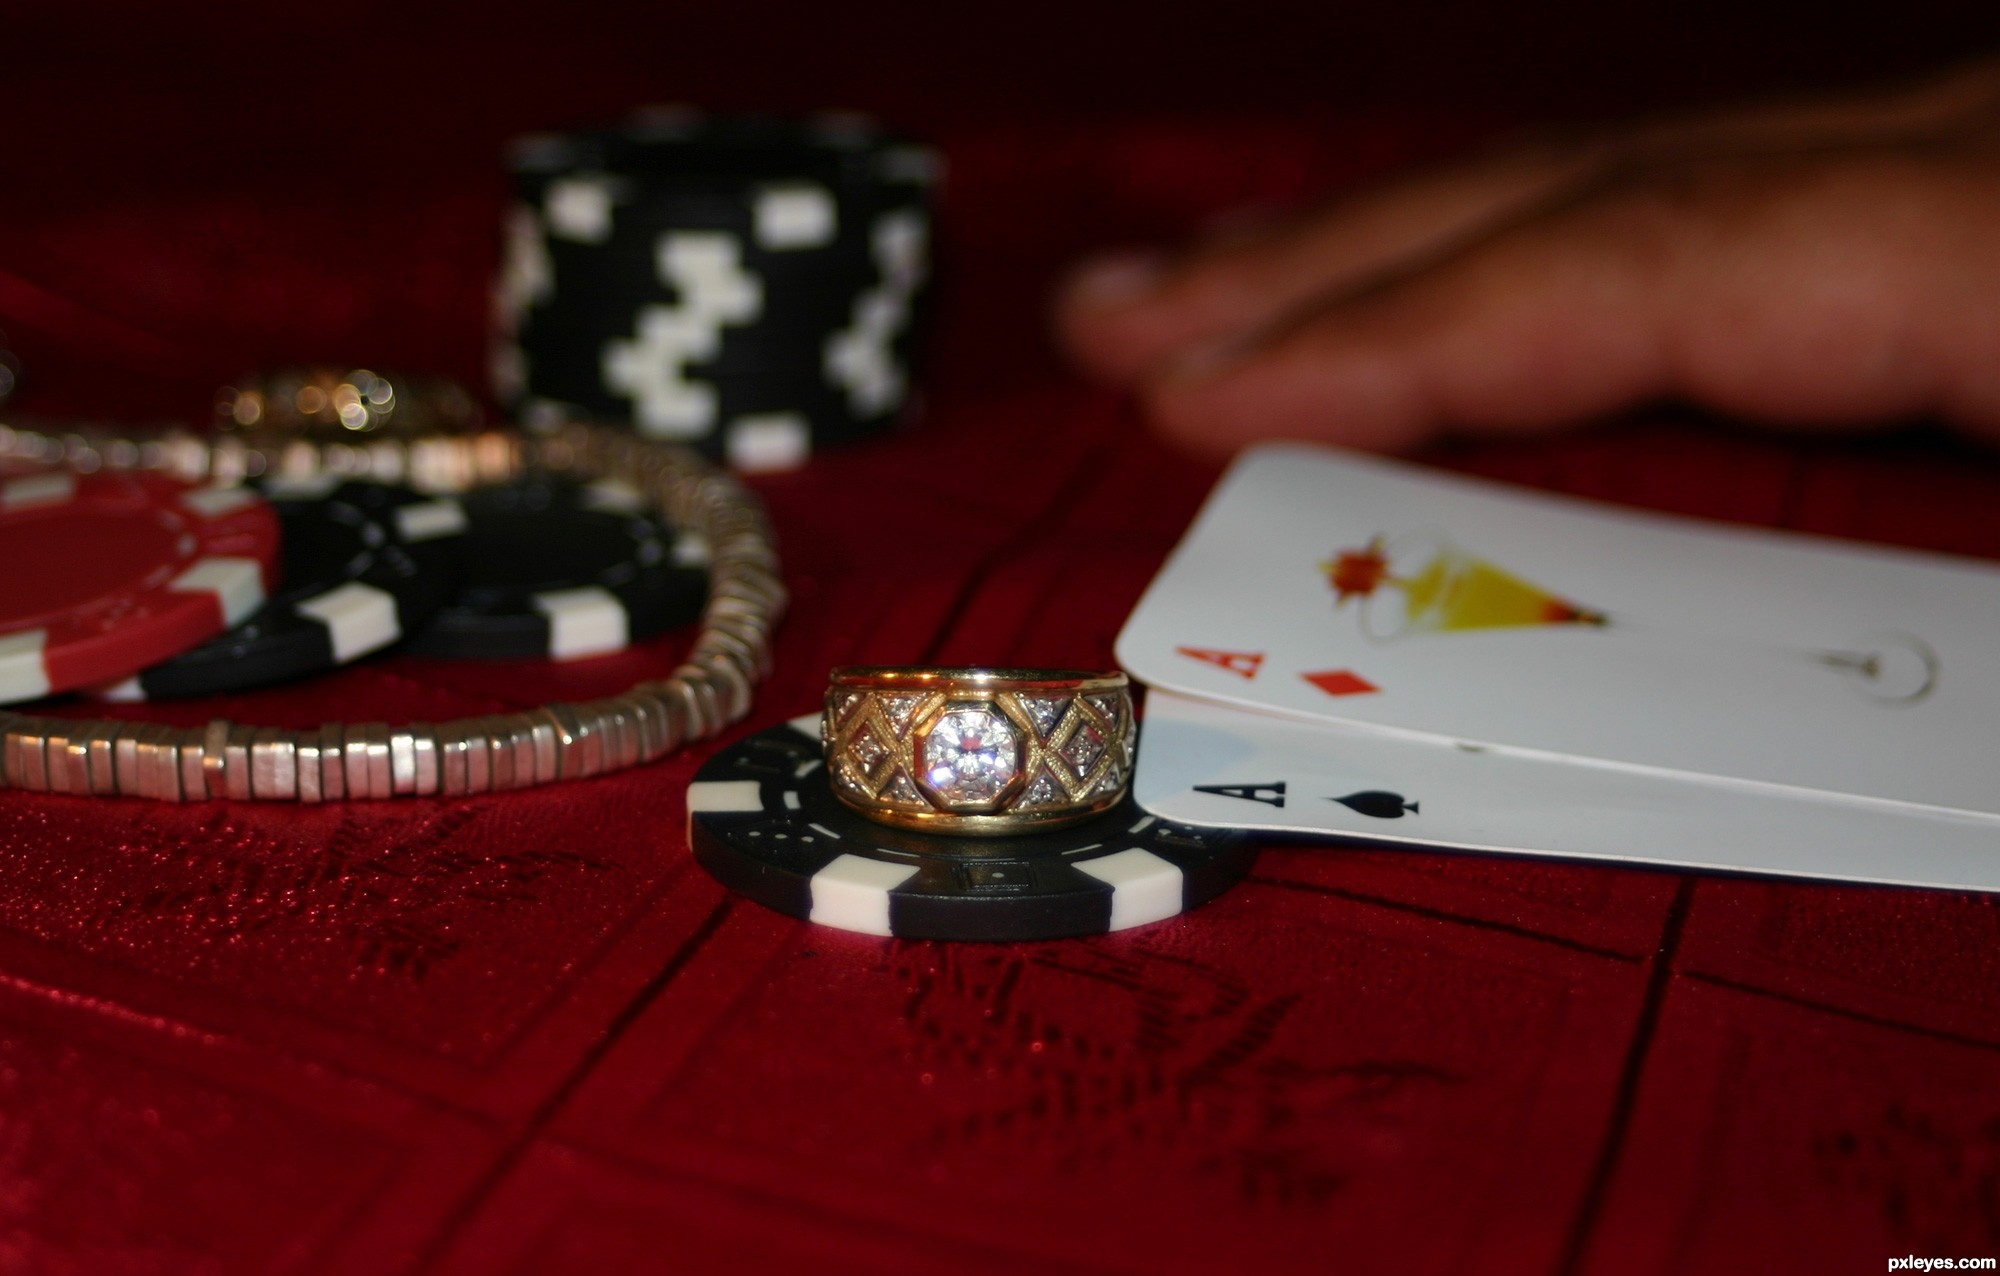 find local poker game: